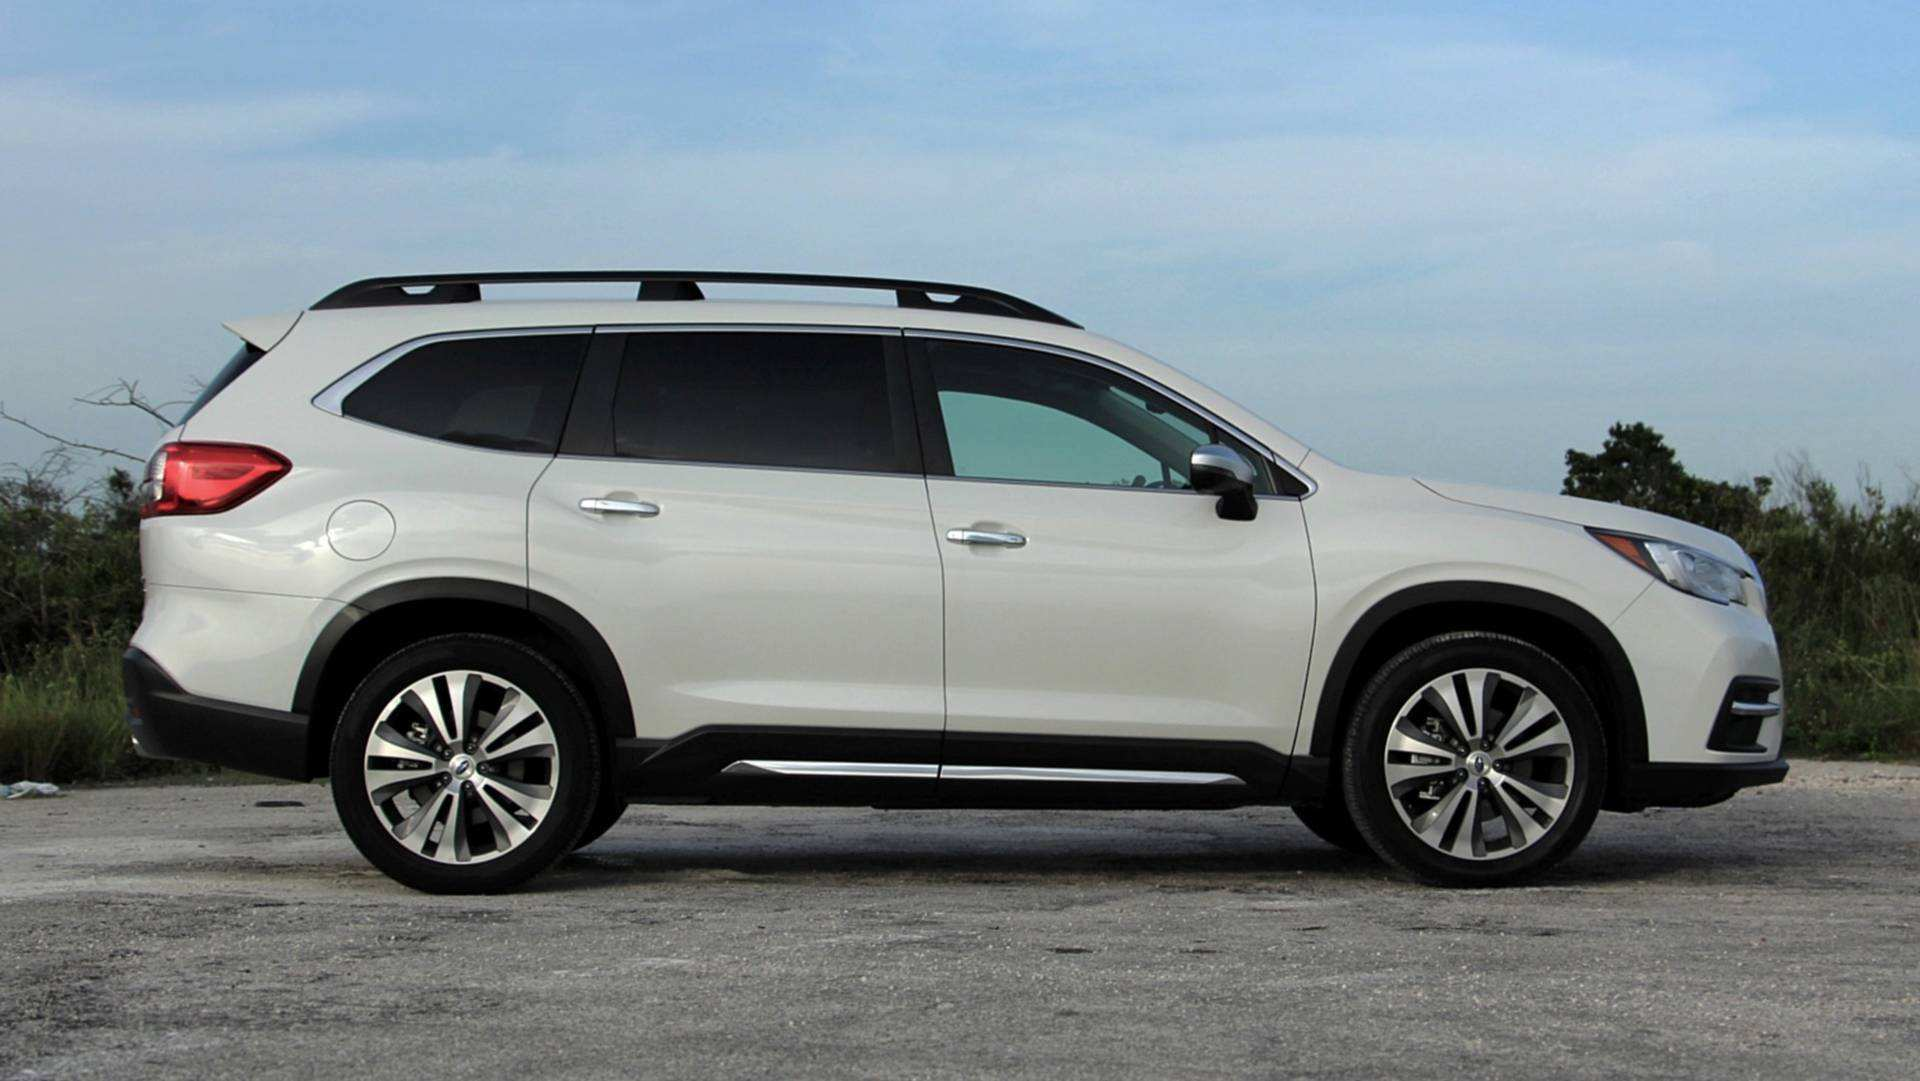 75 Gallery of 2020 Subaru Ascent GVWr Spy Shoot by 2020 Subaru Ascent GVWr